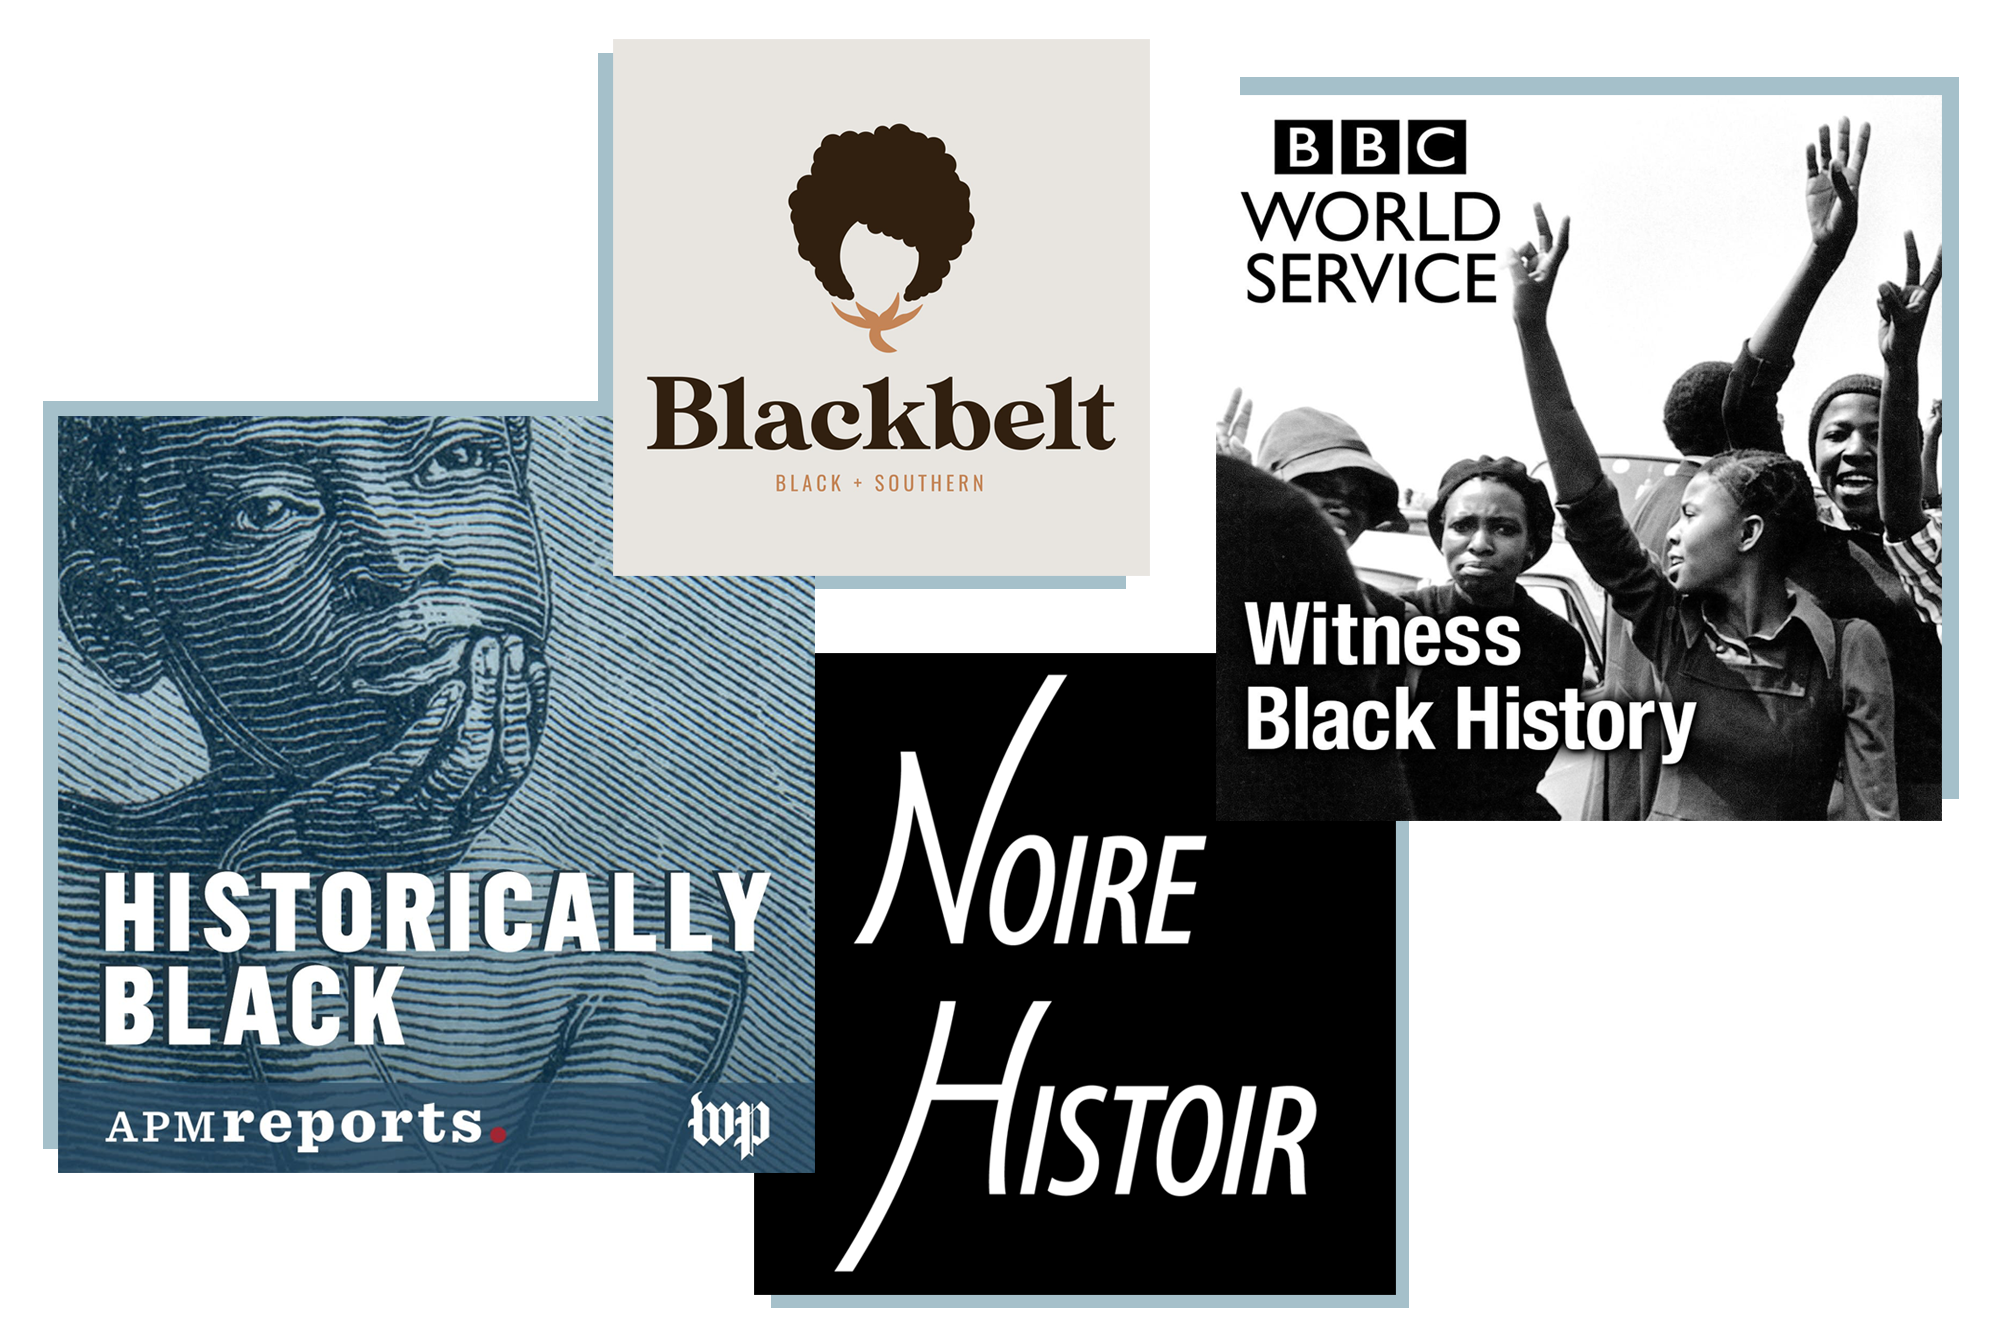 ways-to-celebrate-black-history-month-2021